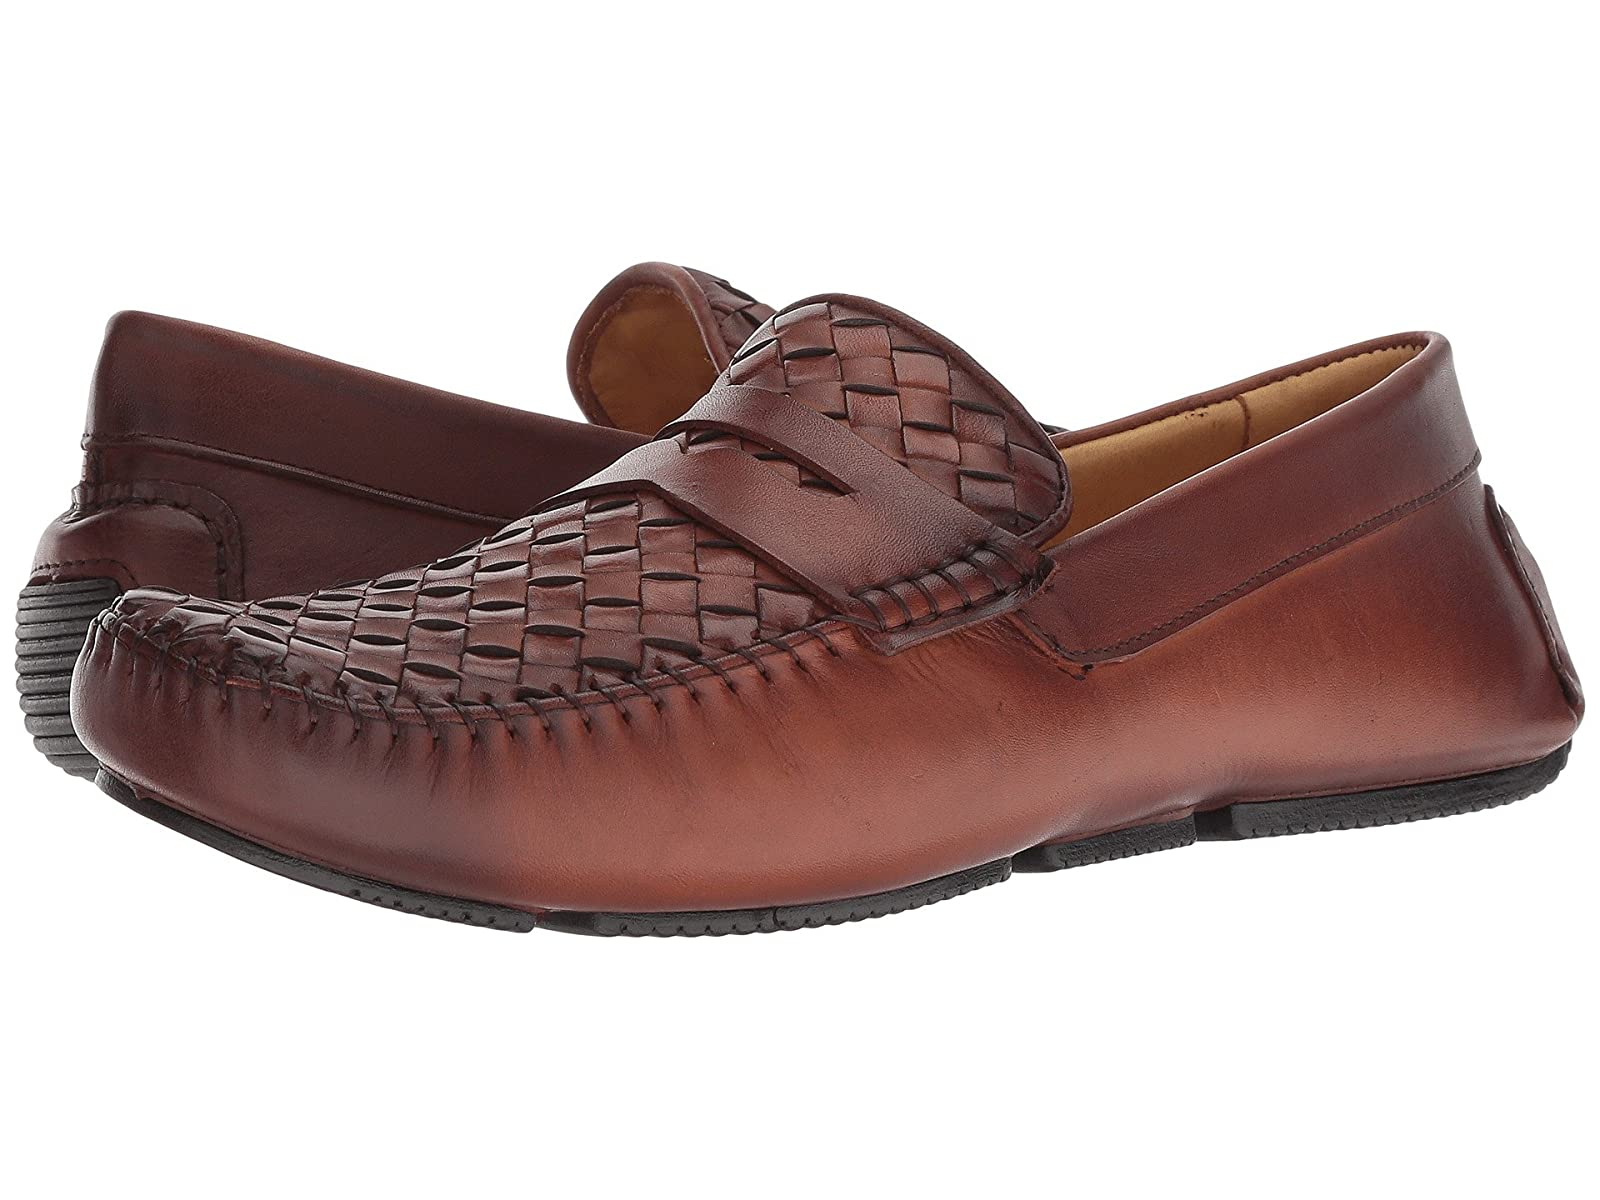 Massimo Matteo Woven Penny DriverAtmospheric grades have affordable shoes